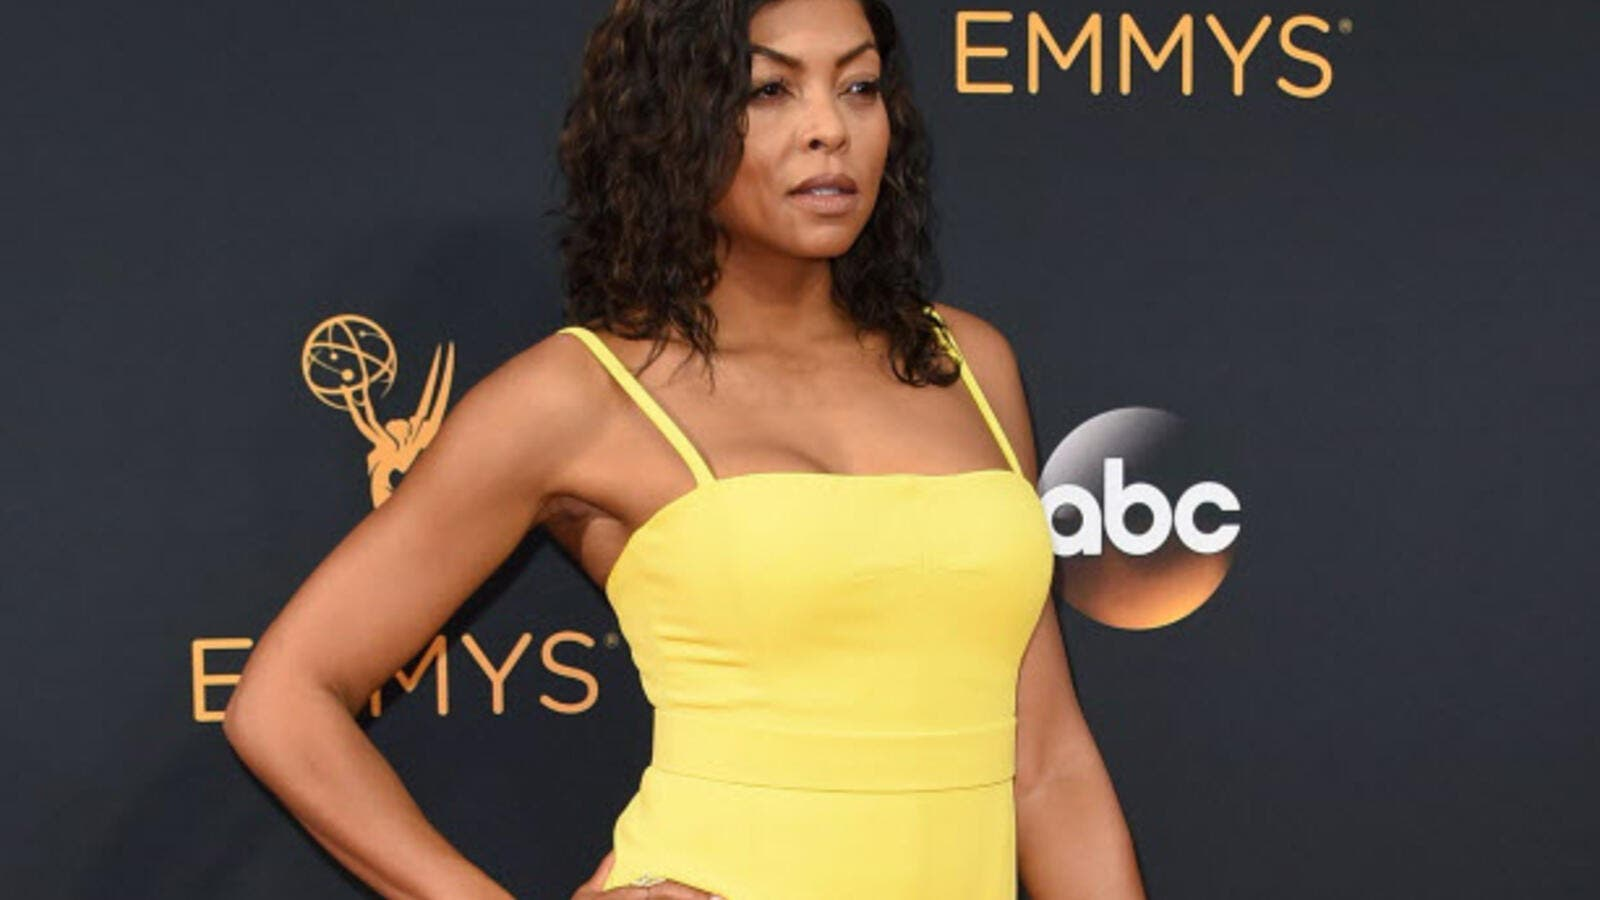 Actress Taraji P. Henson arrives for the 68th Emmy Awards. (AFP/ File)